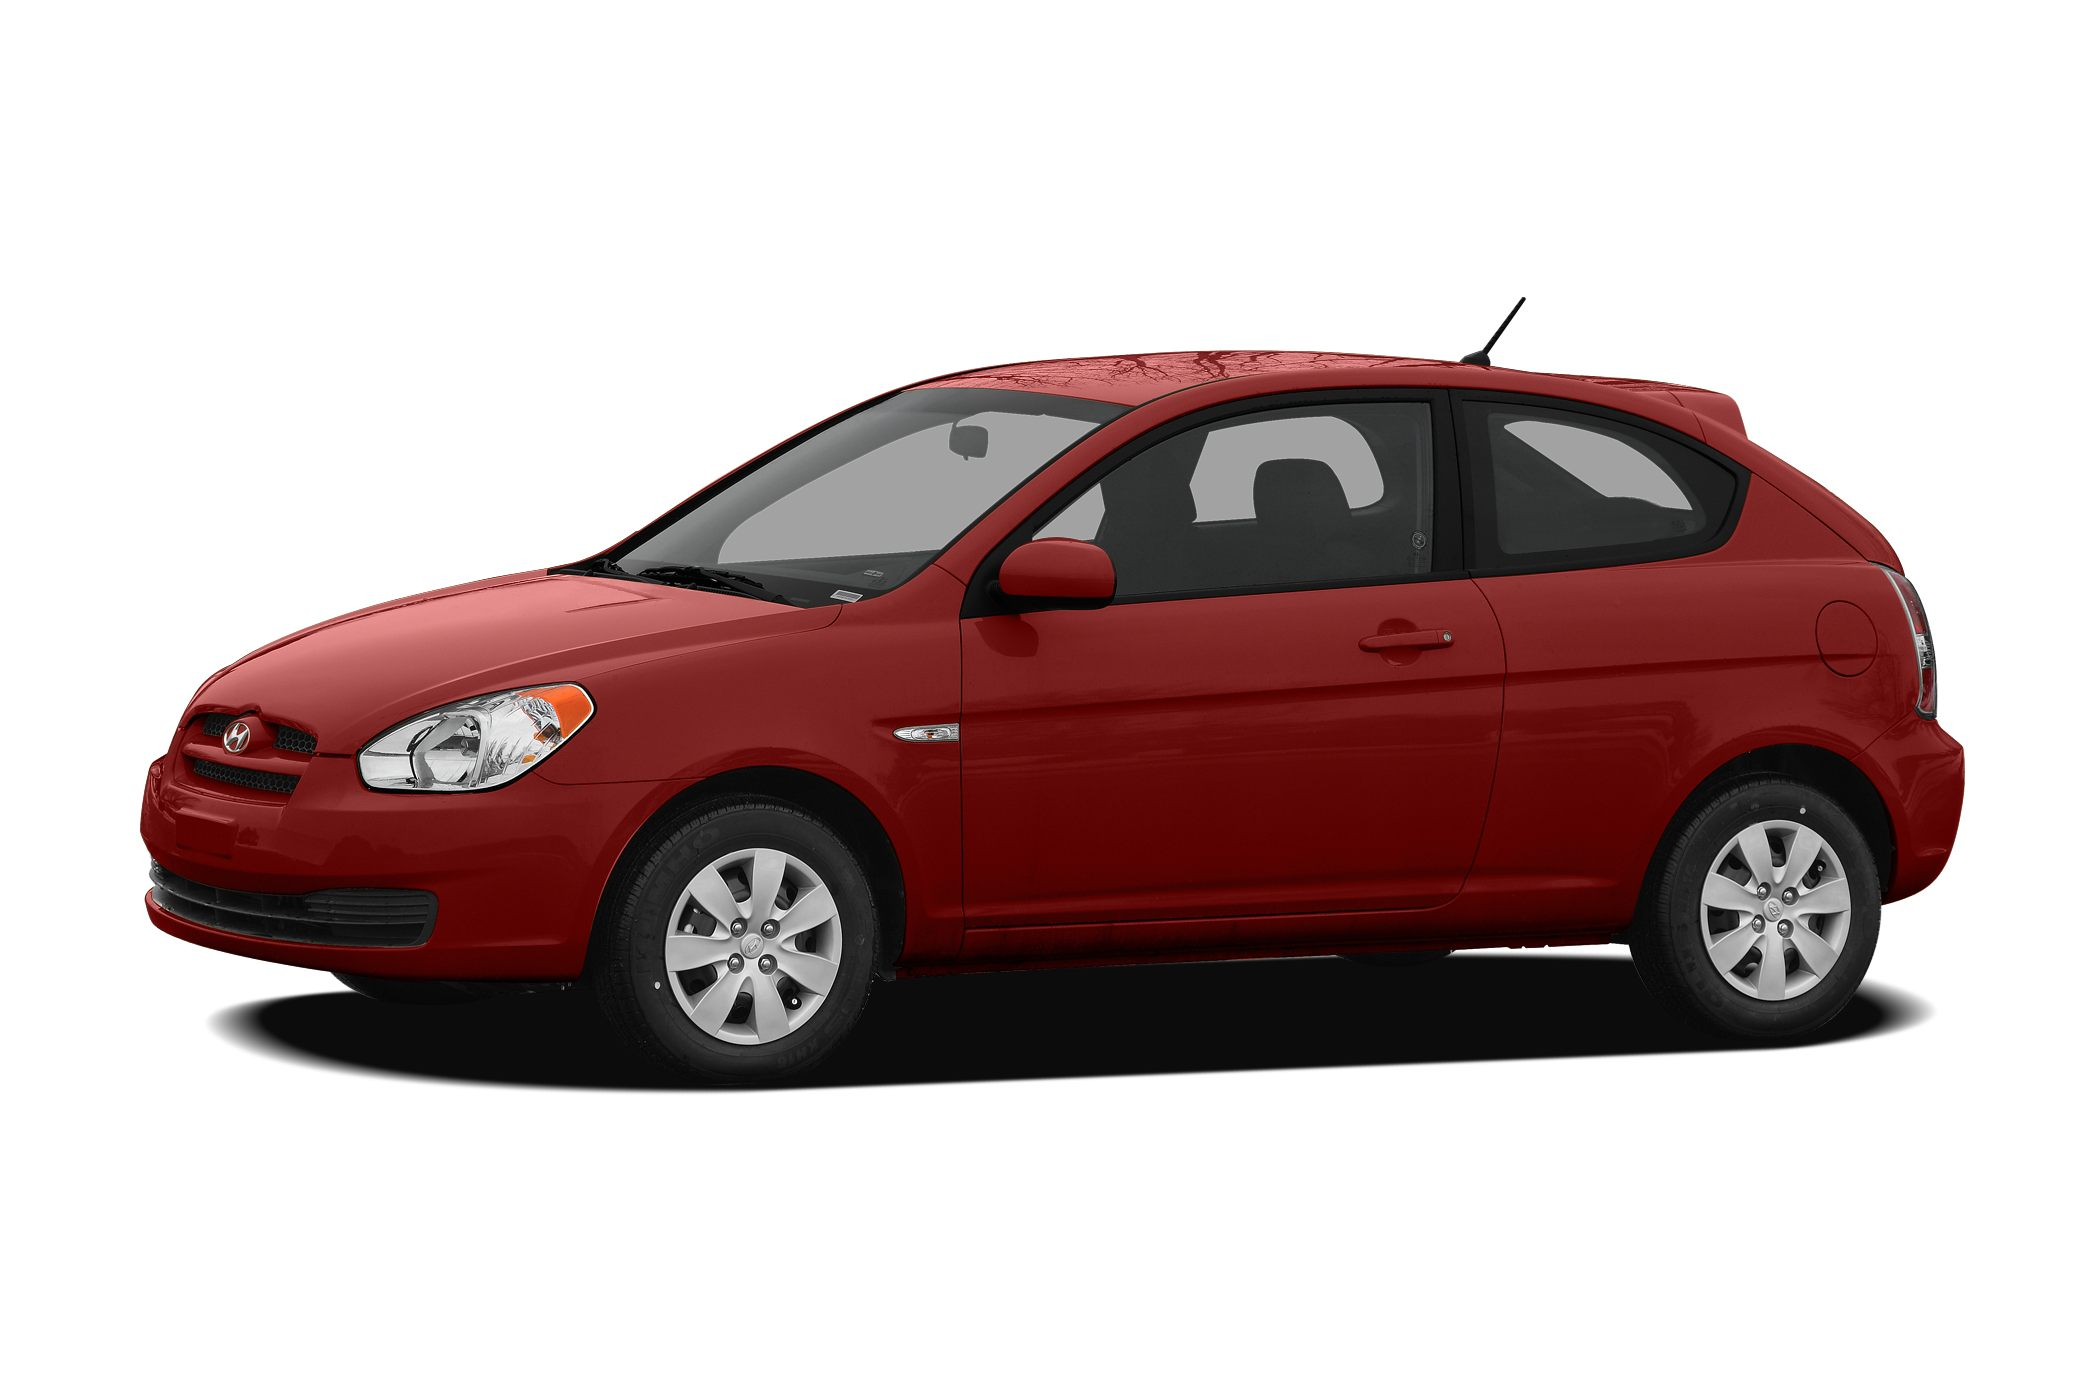 2009 Hyundai Accent GS Hatchback for sale in Aurora for $6,995 with 93,553 miles.